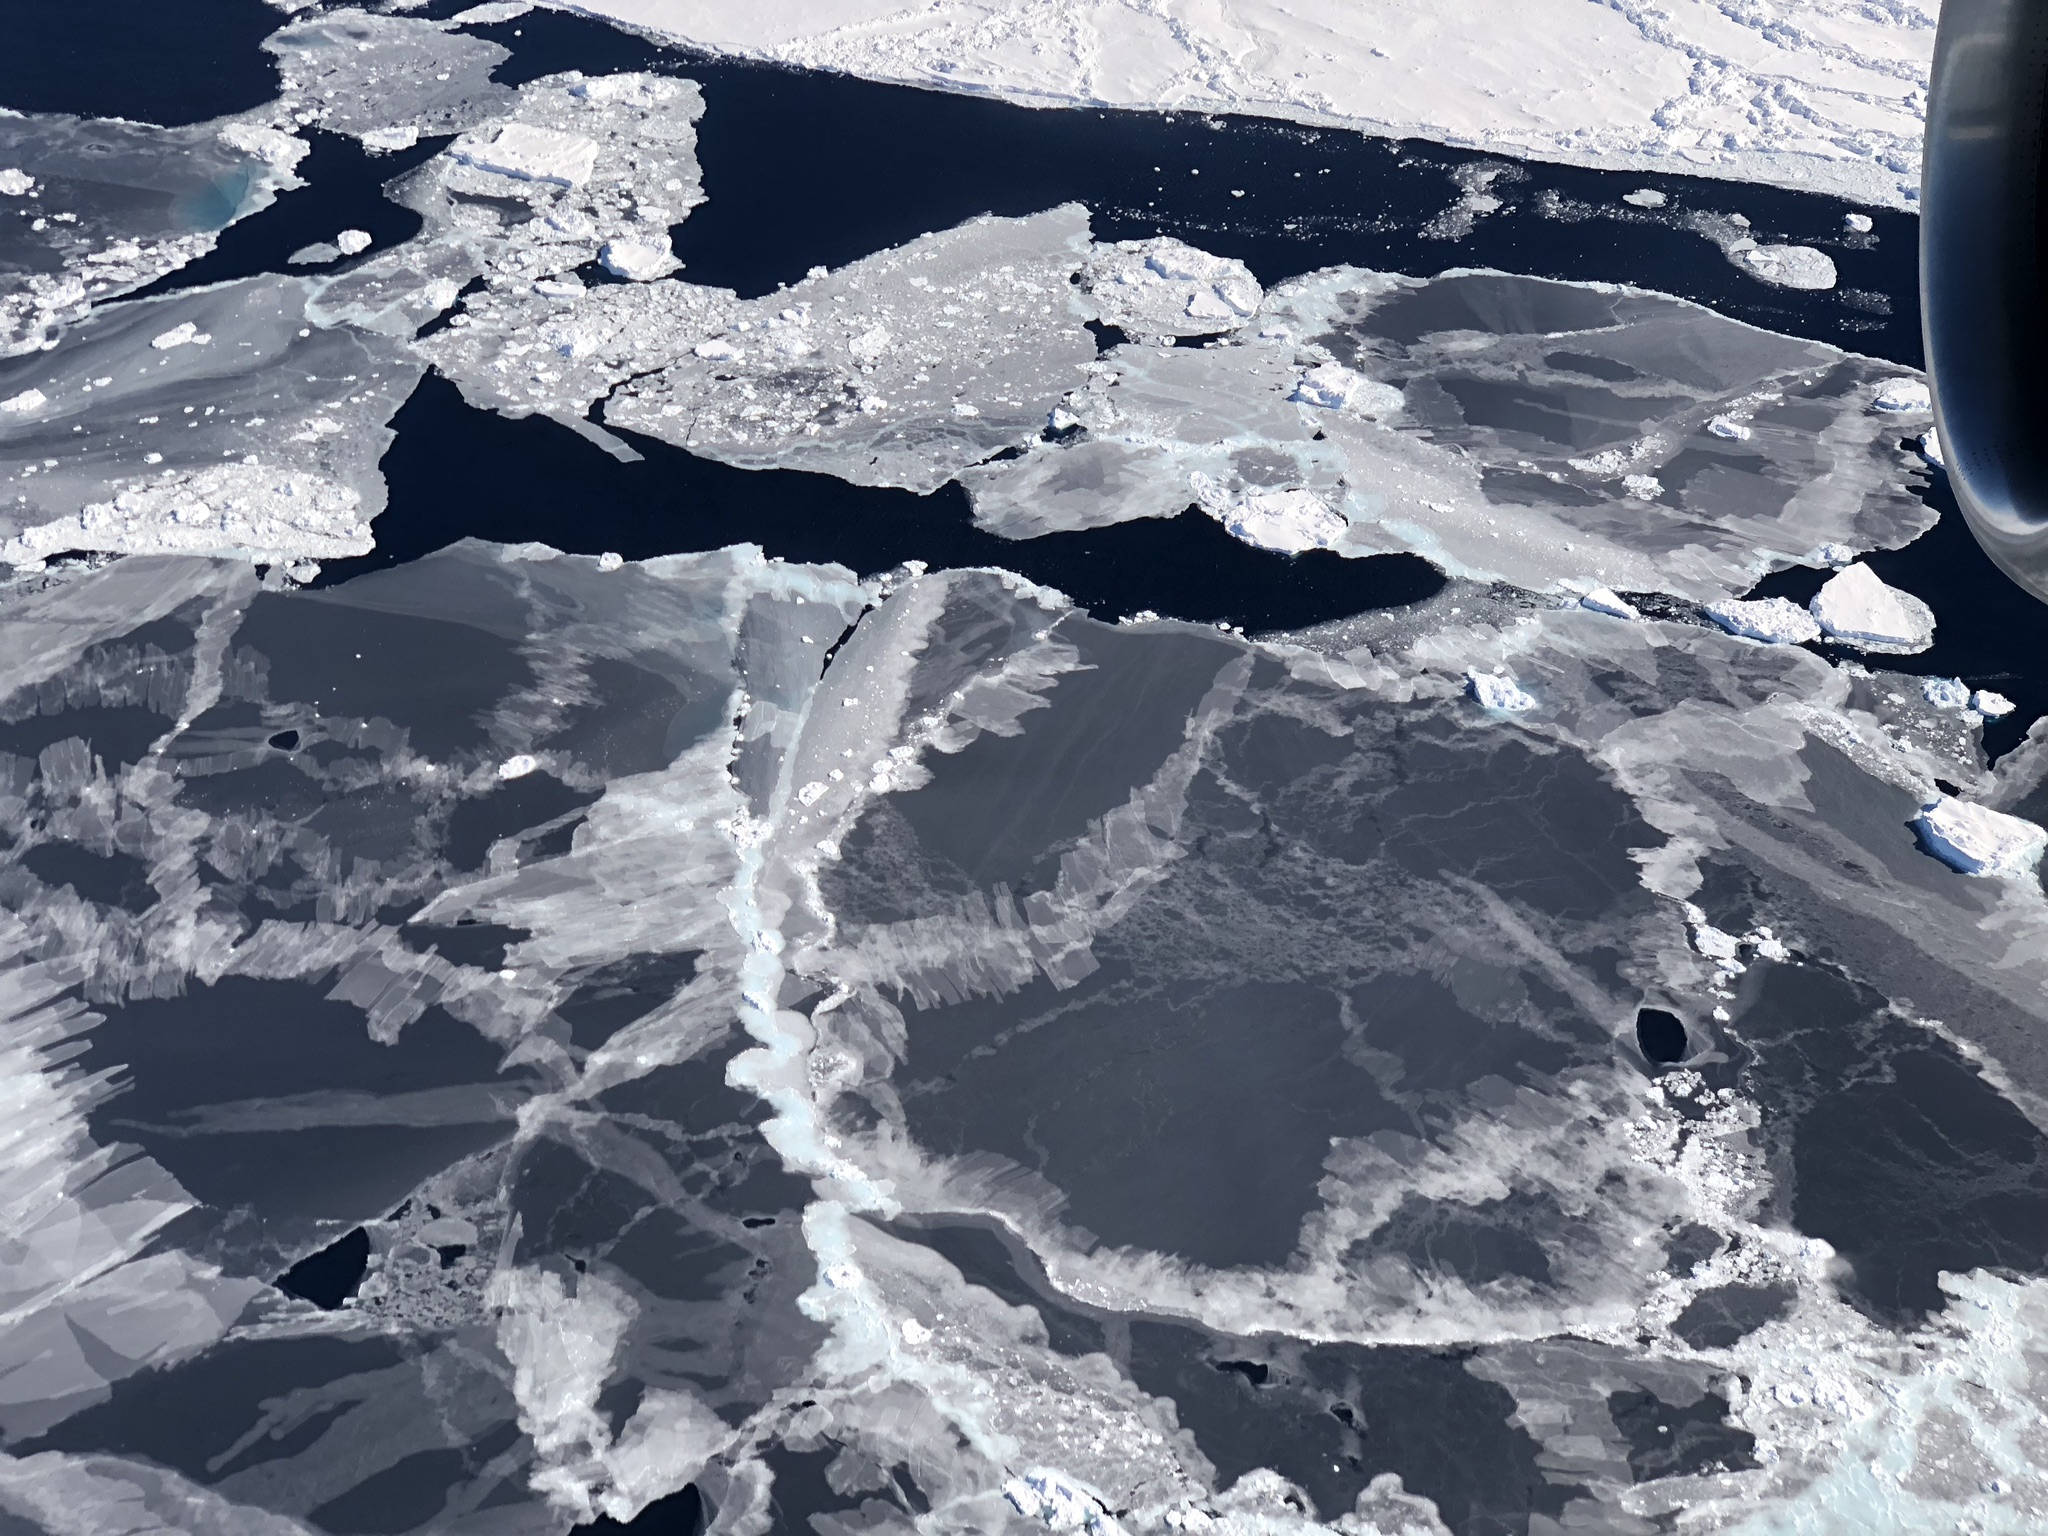 Image: ICESat-2 Reveals Profile of Ice Sheets, Sea Ice, Forests